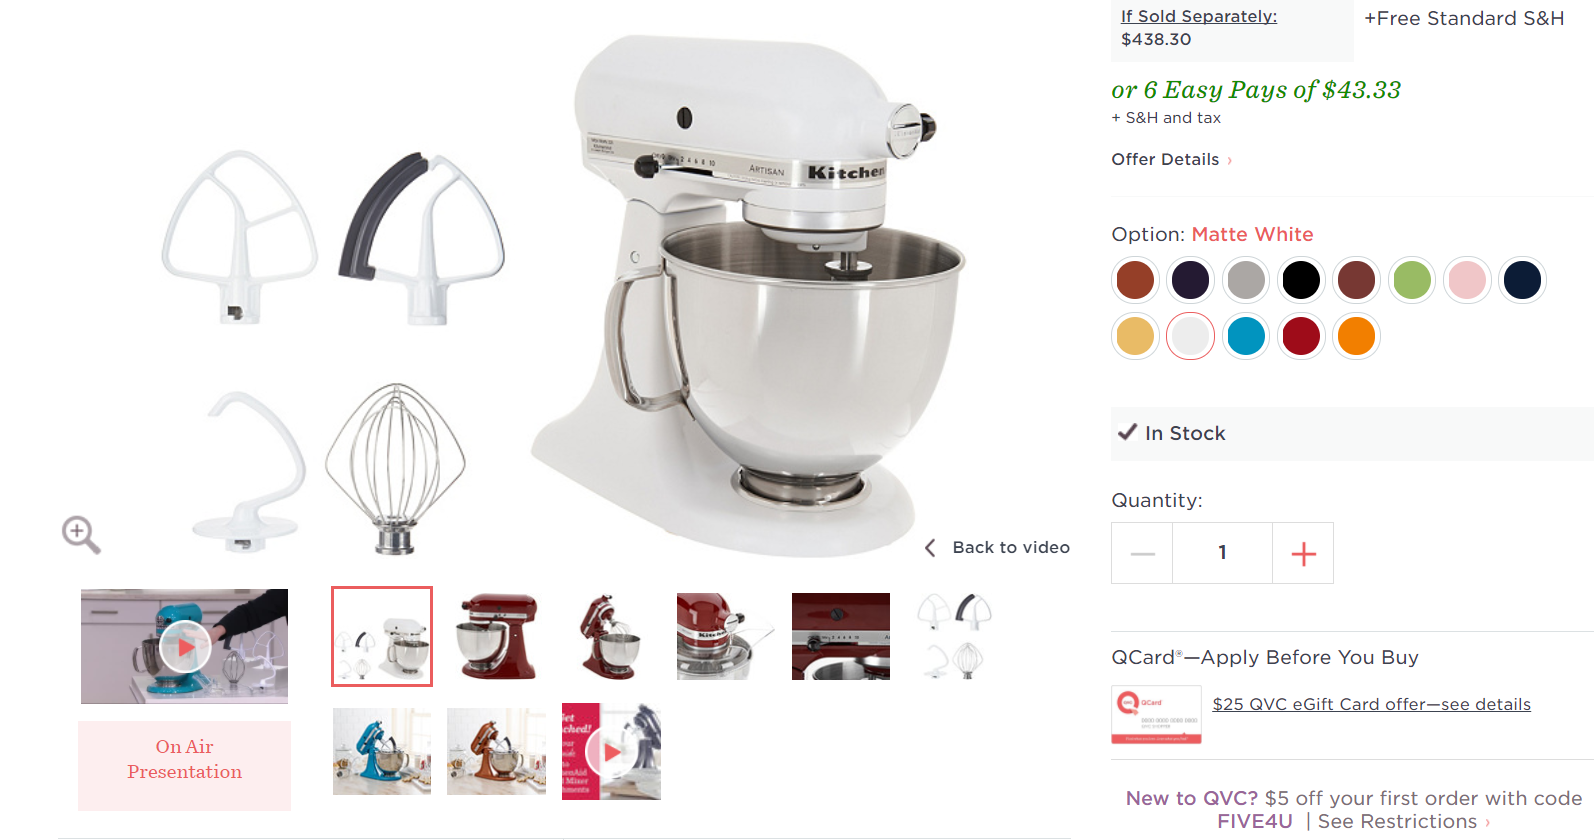 qvc kitchen appliances so many colors available like the white one best qvc kitchenaid mixer kitchen appliances tips and review